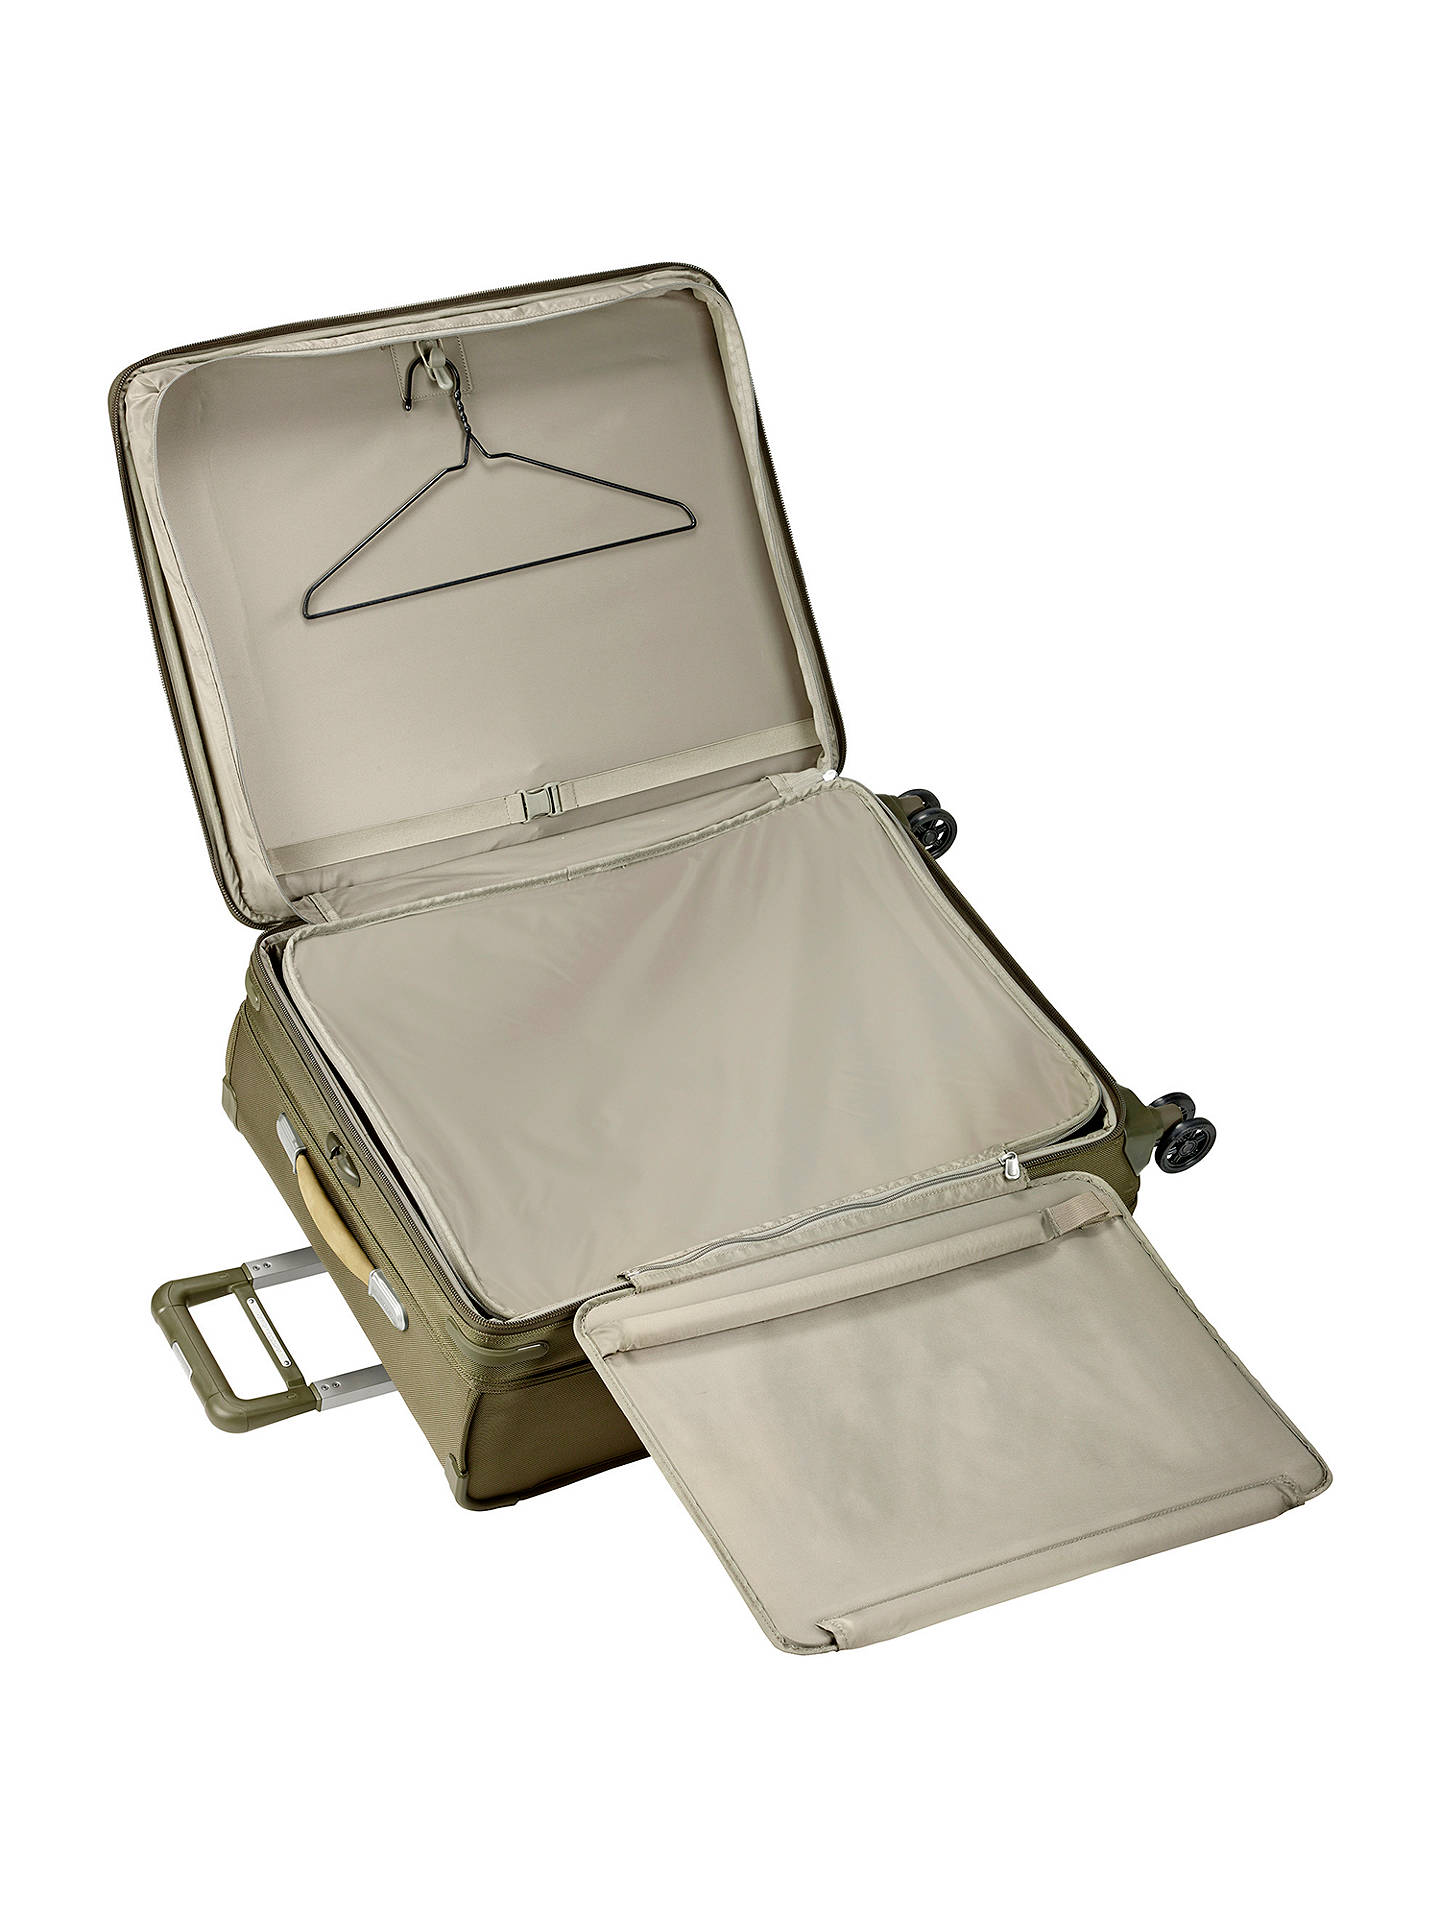 BuyBriggs & Riley Baseline Expandable 4-Wheel Spinner Large Suitcase, Olive Online at johnlewis.com